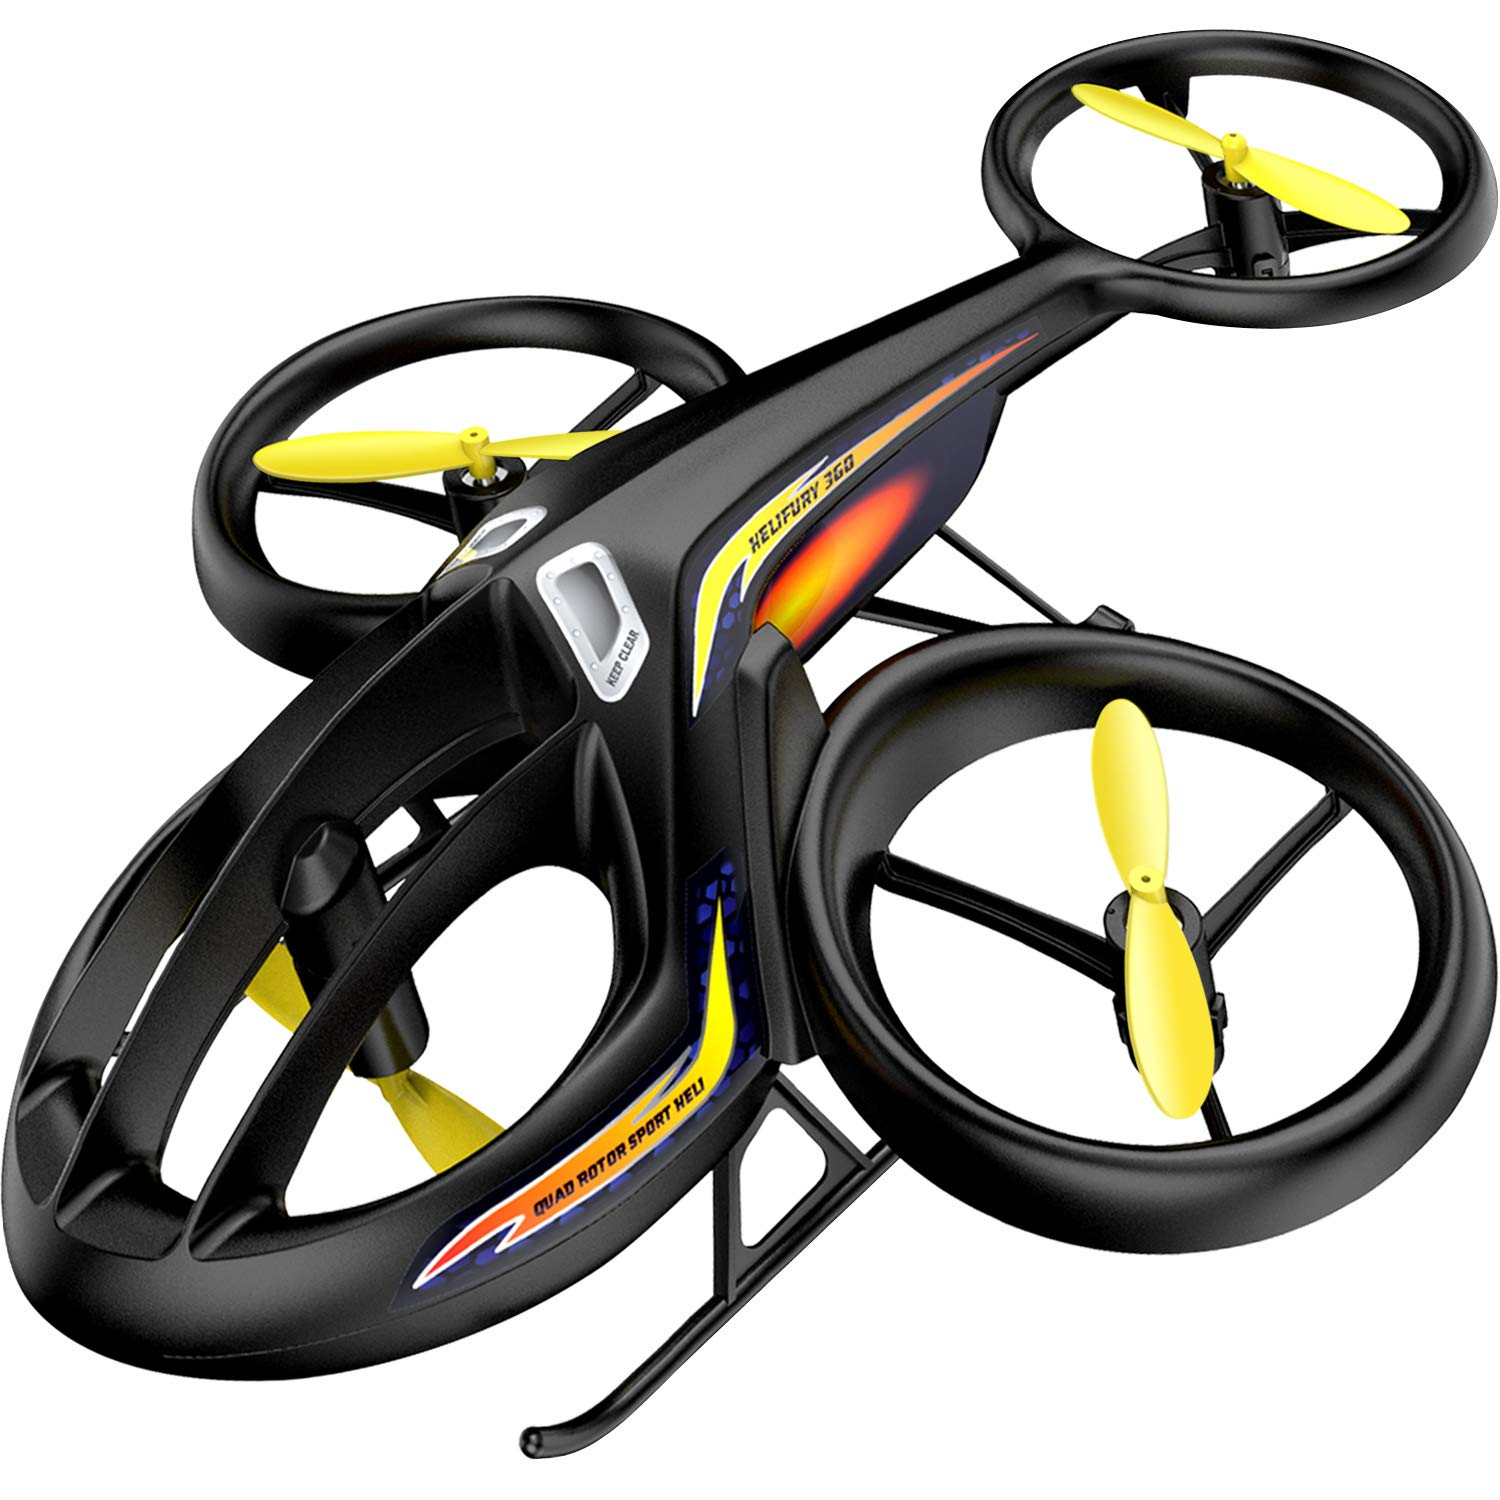 RC Helicopter, SYMA 2019 Latest Remote Control Drone with Gyro and LED Light 4HZ Channel Plastic Mini Series Helicopter for Kids & Adult Indoor Outdoor Micro Toy Gift for Boys Girls[Newest Model]